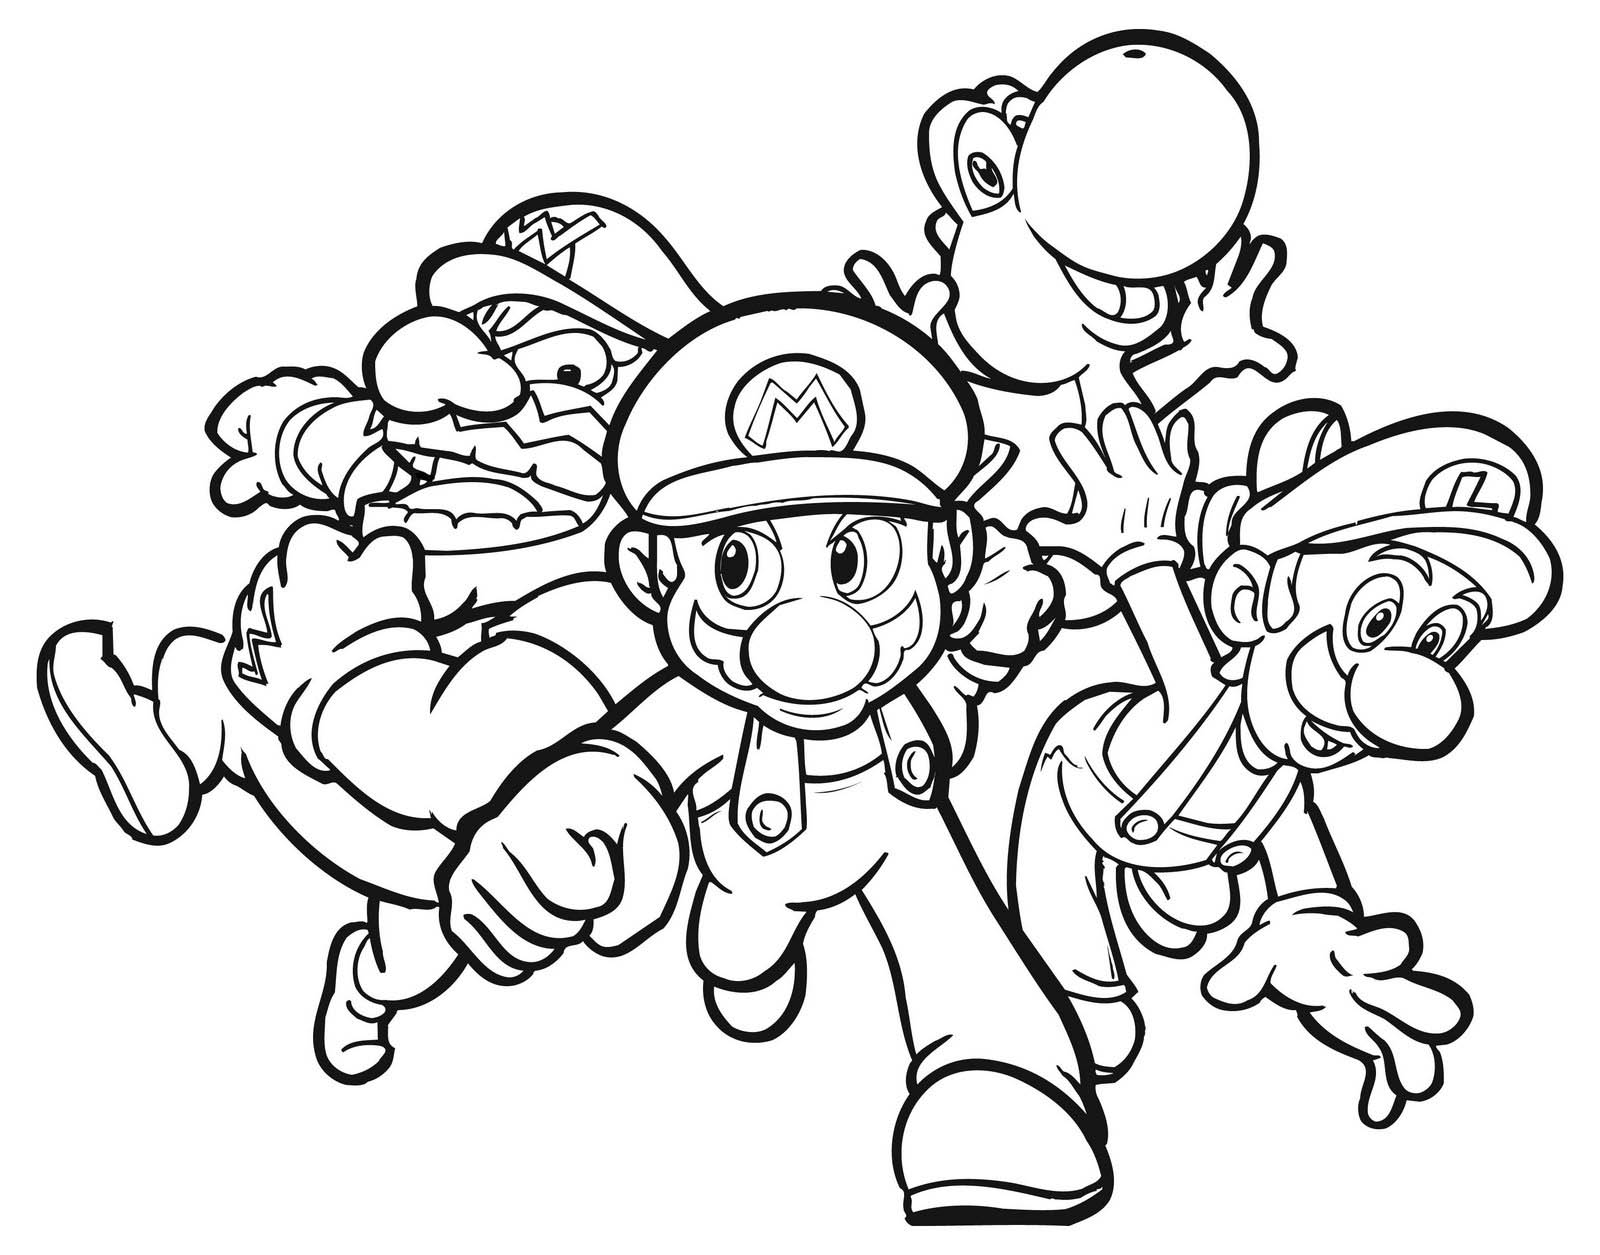 online mario coloring pages - photo#7